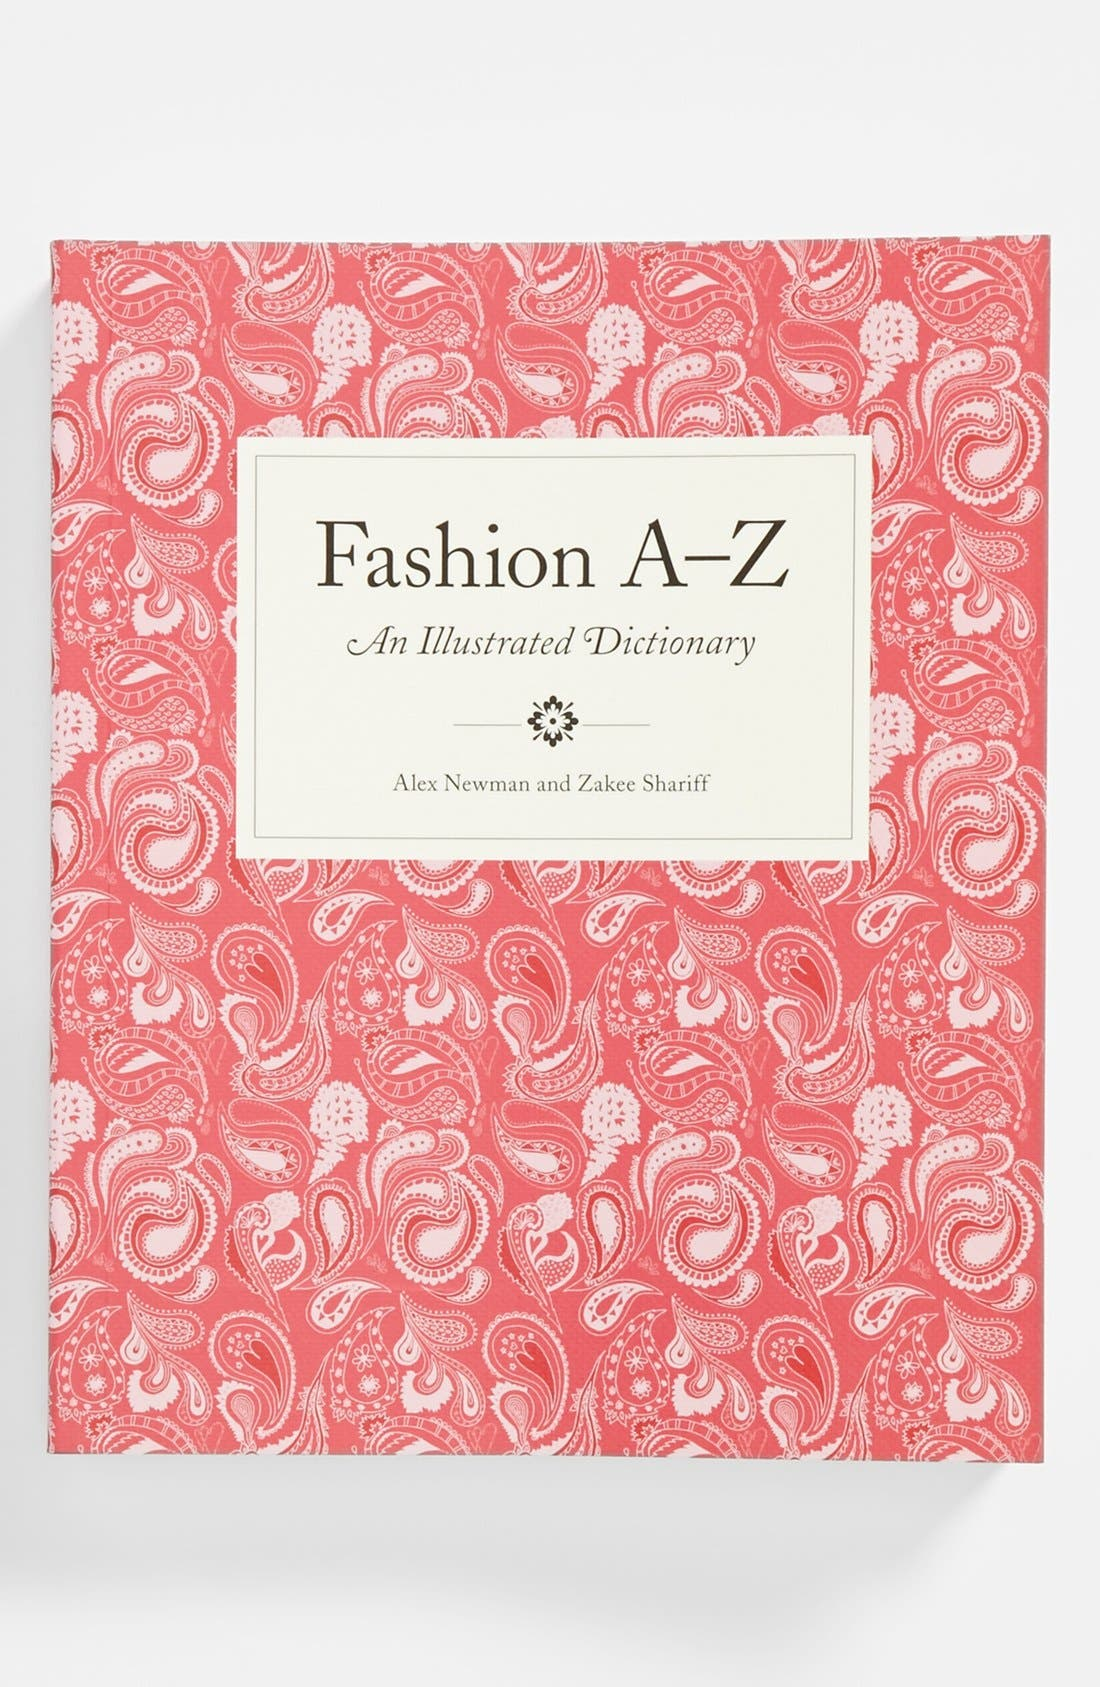 Main Image - 'Fashion A - Z' Illustrated Dictionary